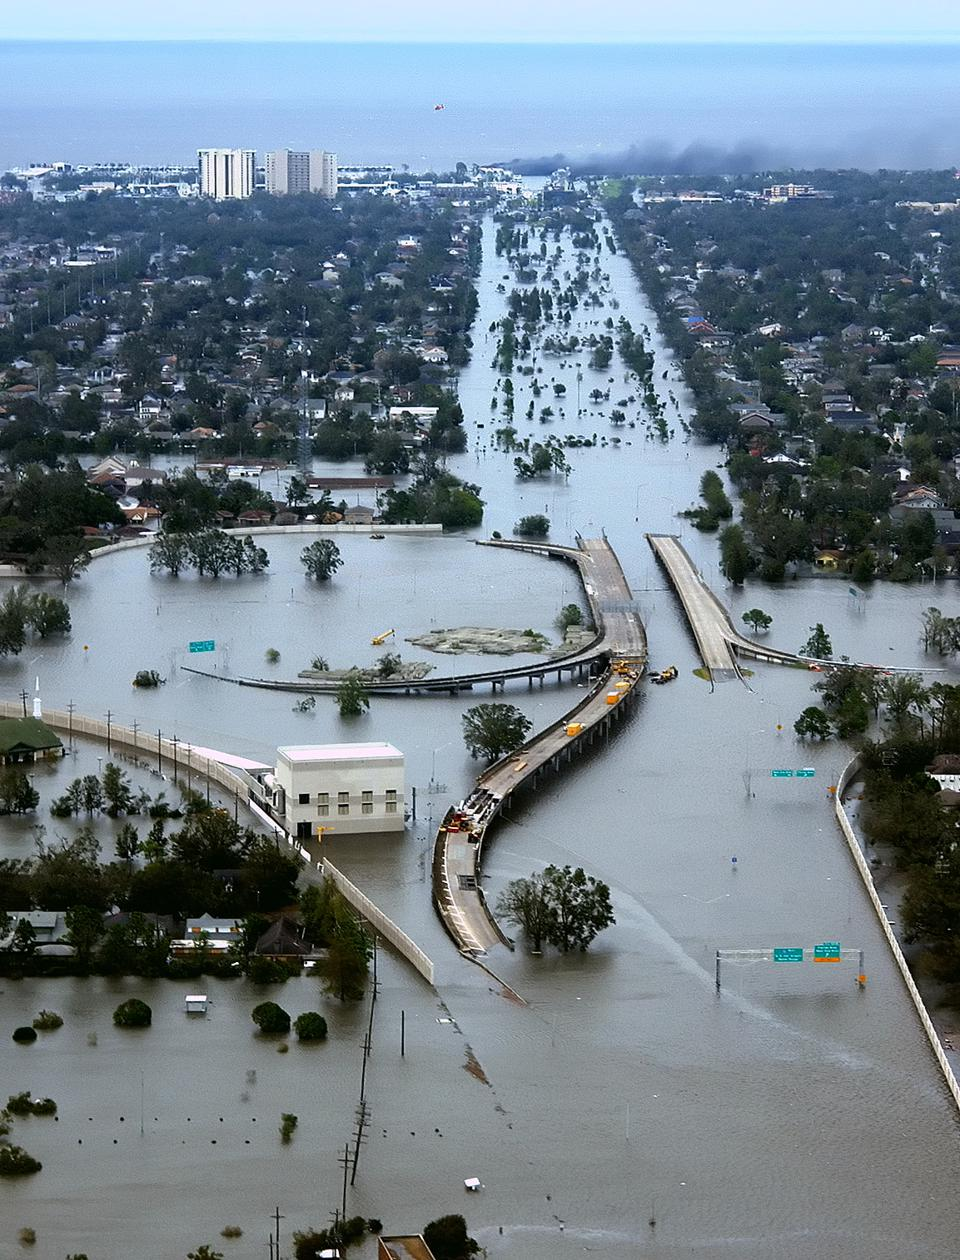 New Orleans during Hurricane Katrina